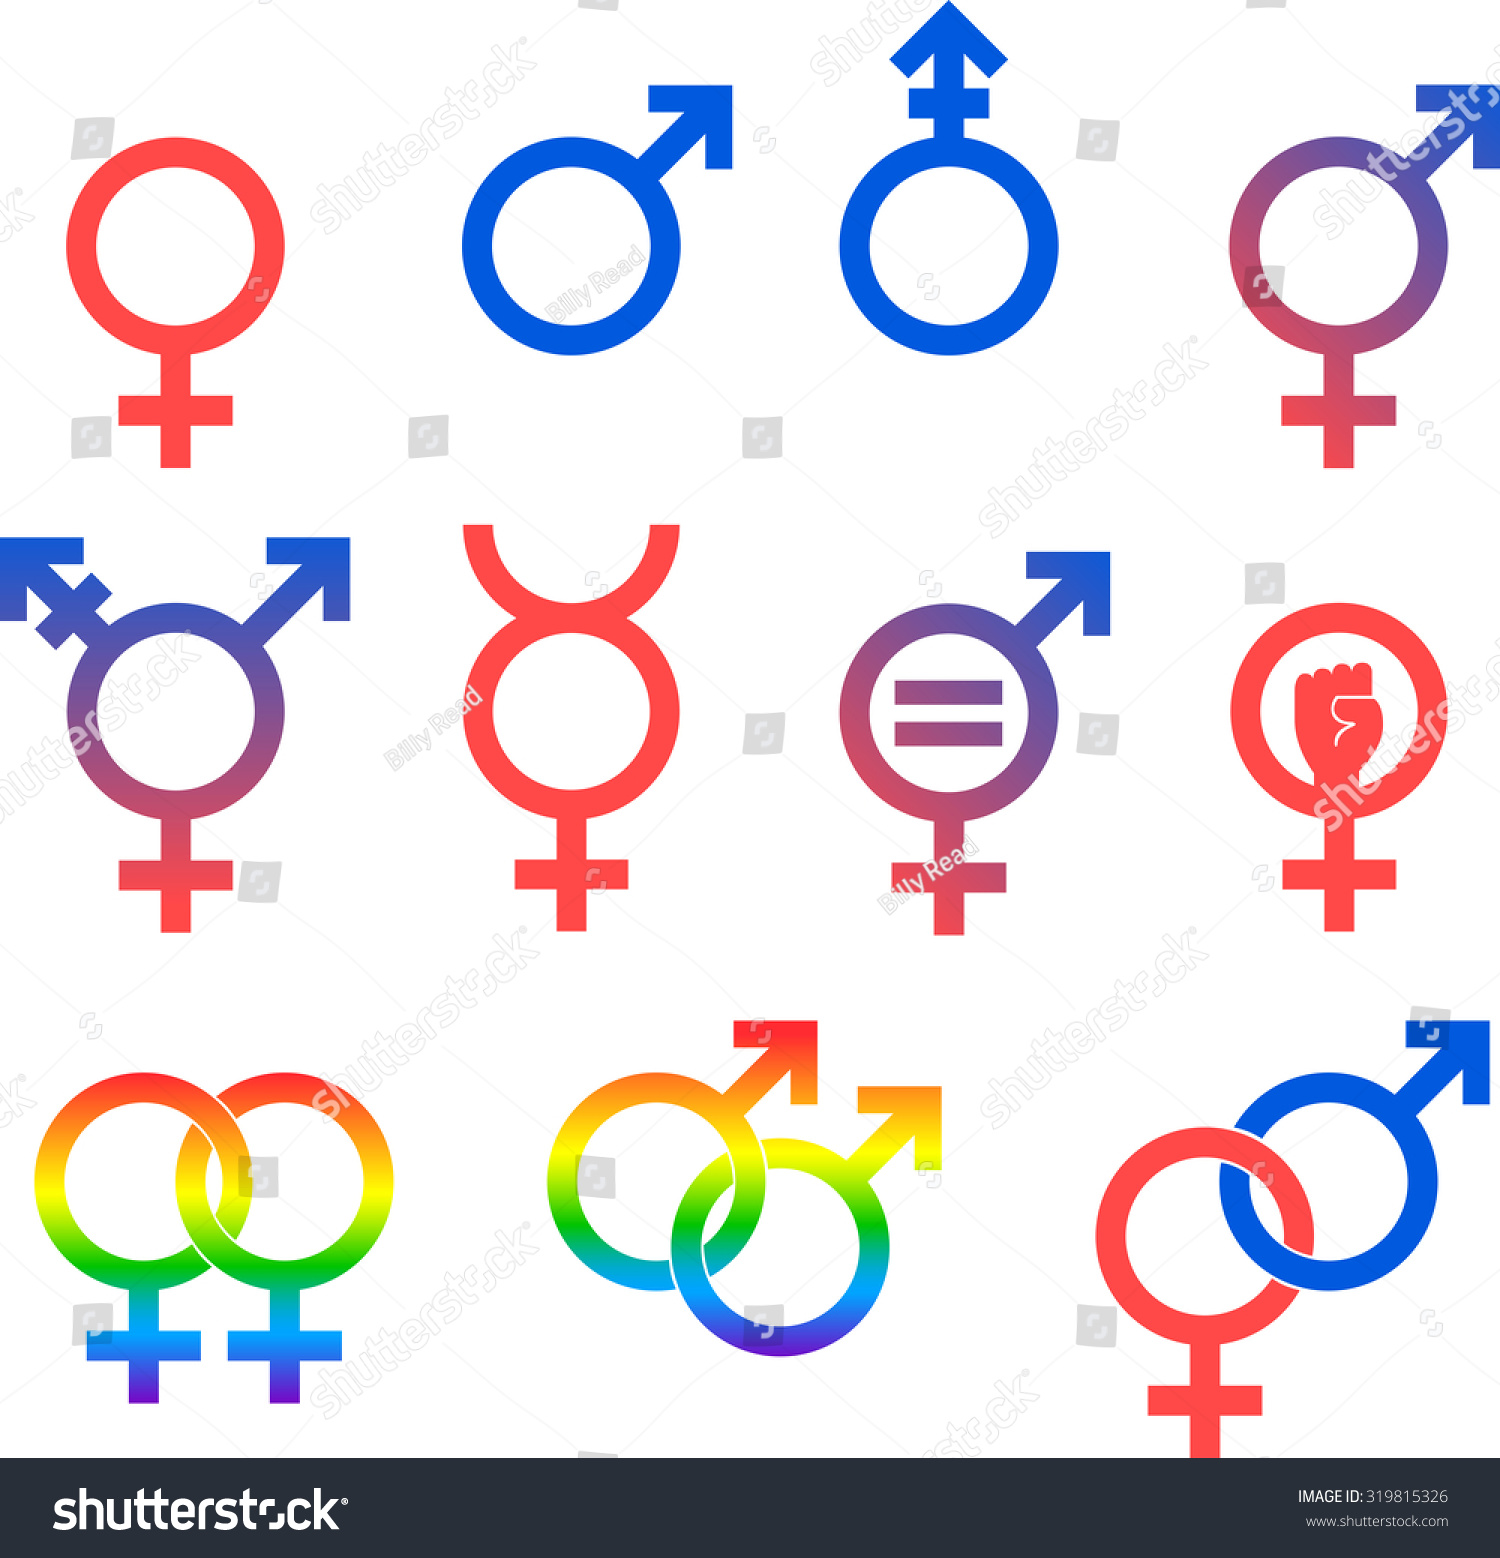 Gender icons set vector graphic images stock vector 319815326 gender icons set of vector graphic images representing the universal symbols for gender and sexuality buycottarizona